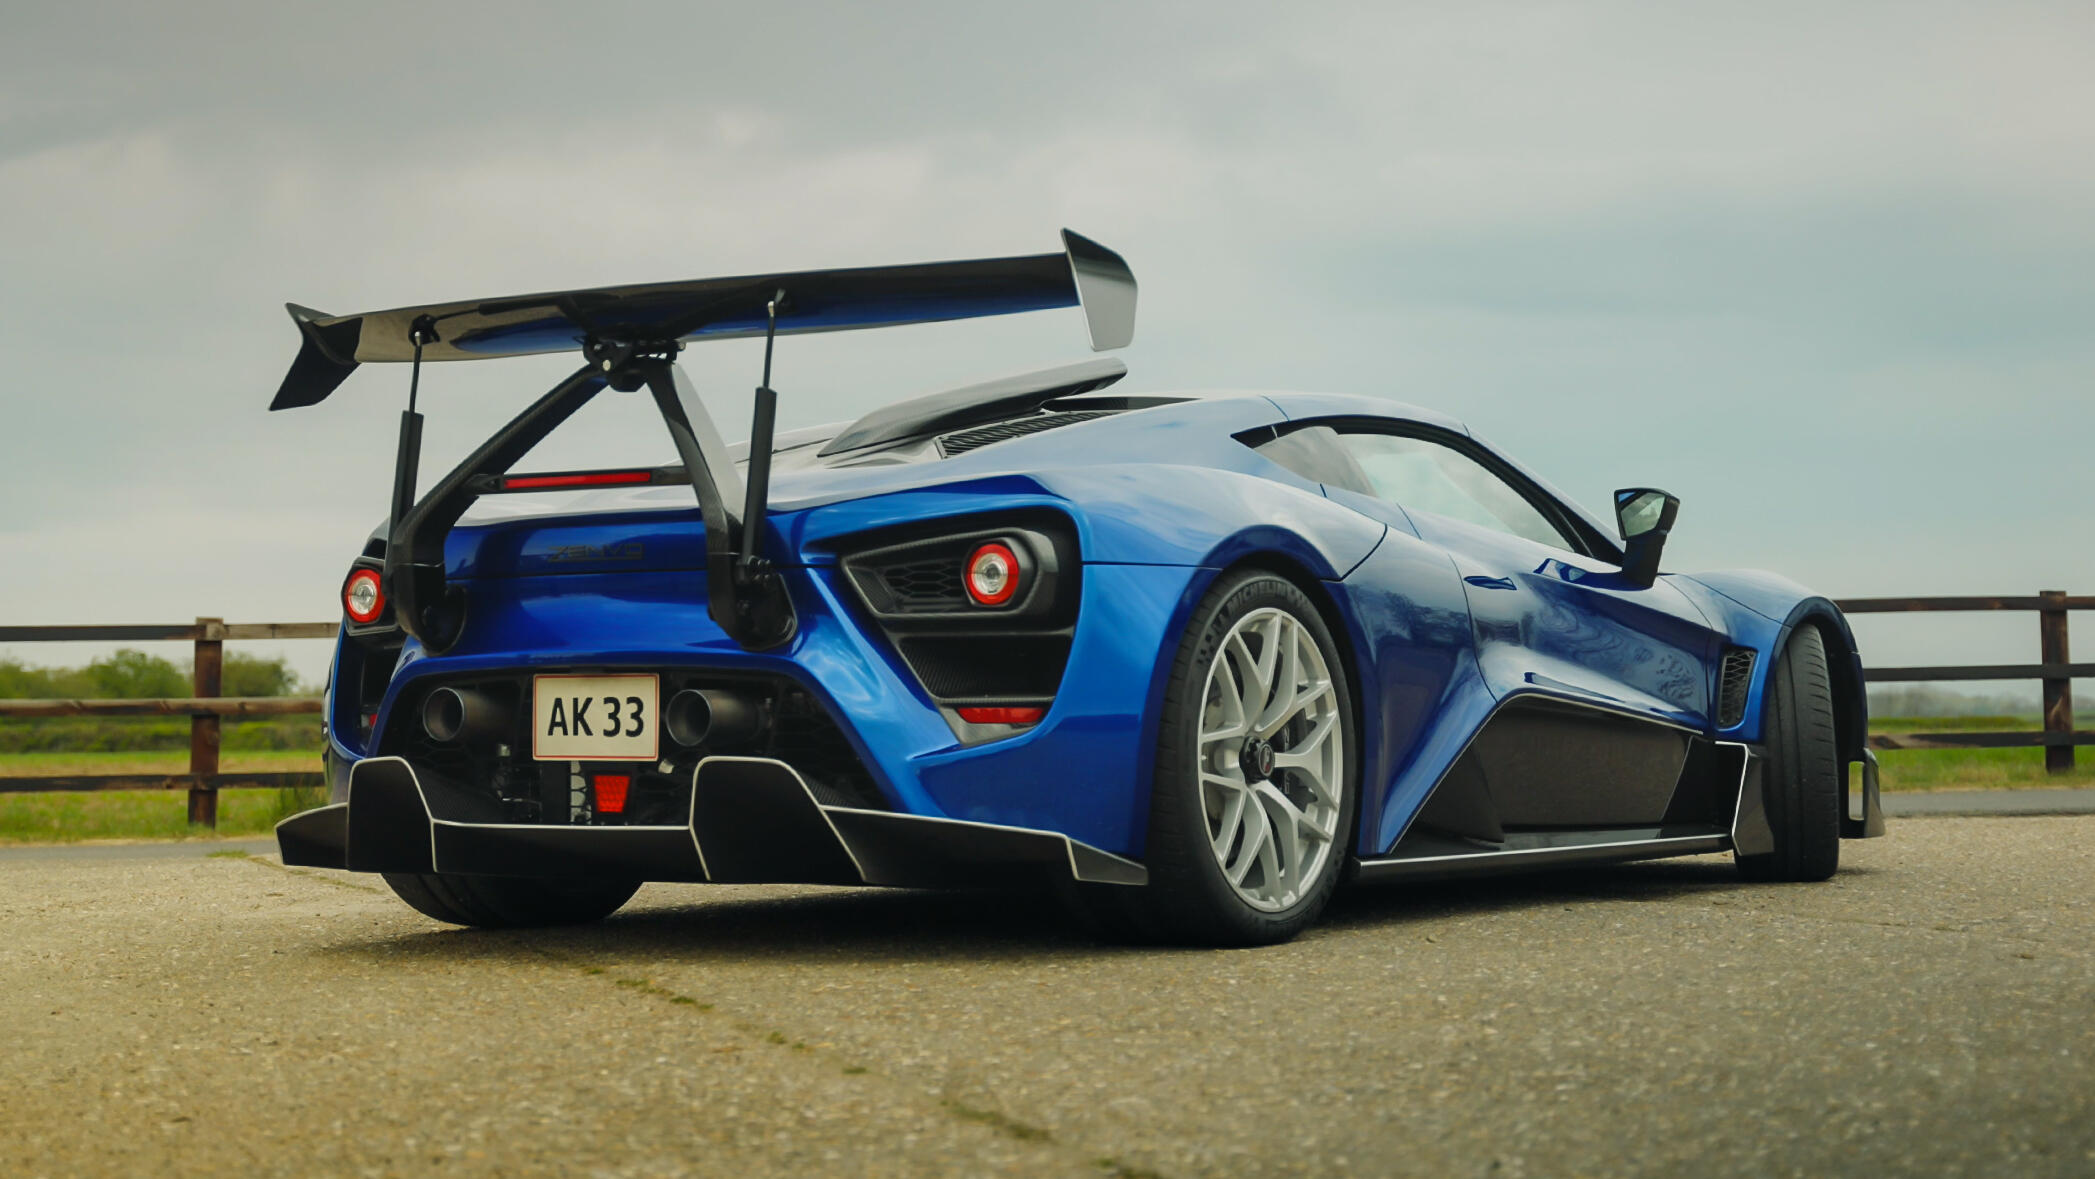 Video: The Zenvo TSR-S has a neat party trick with its active rear wing